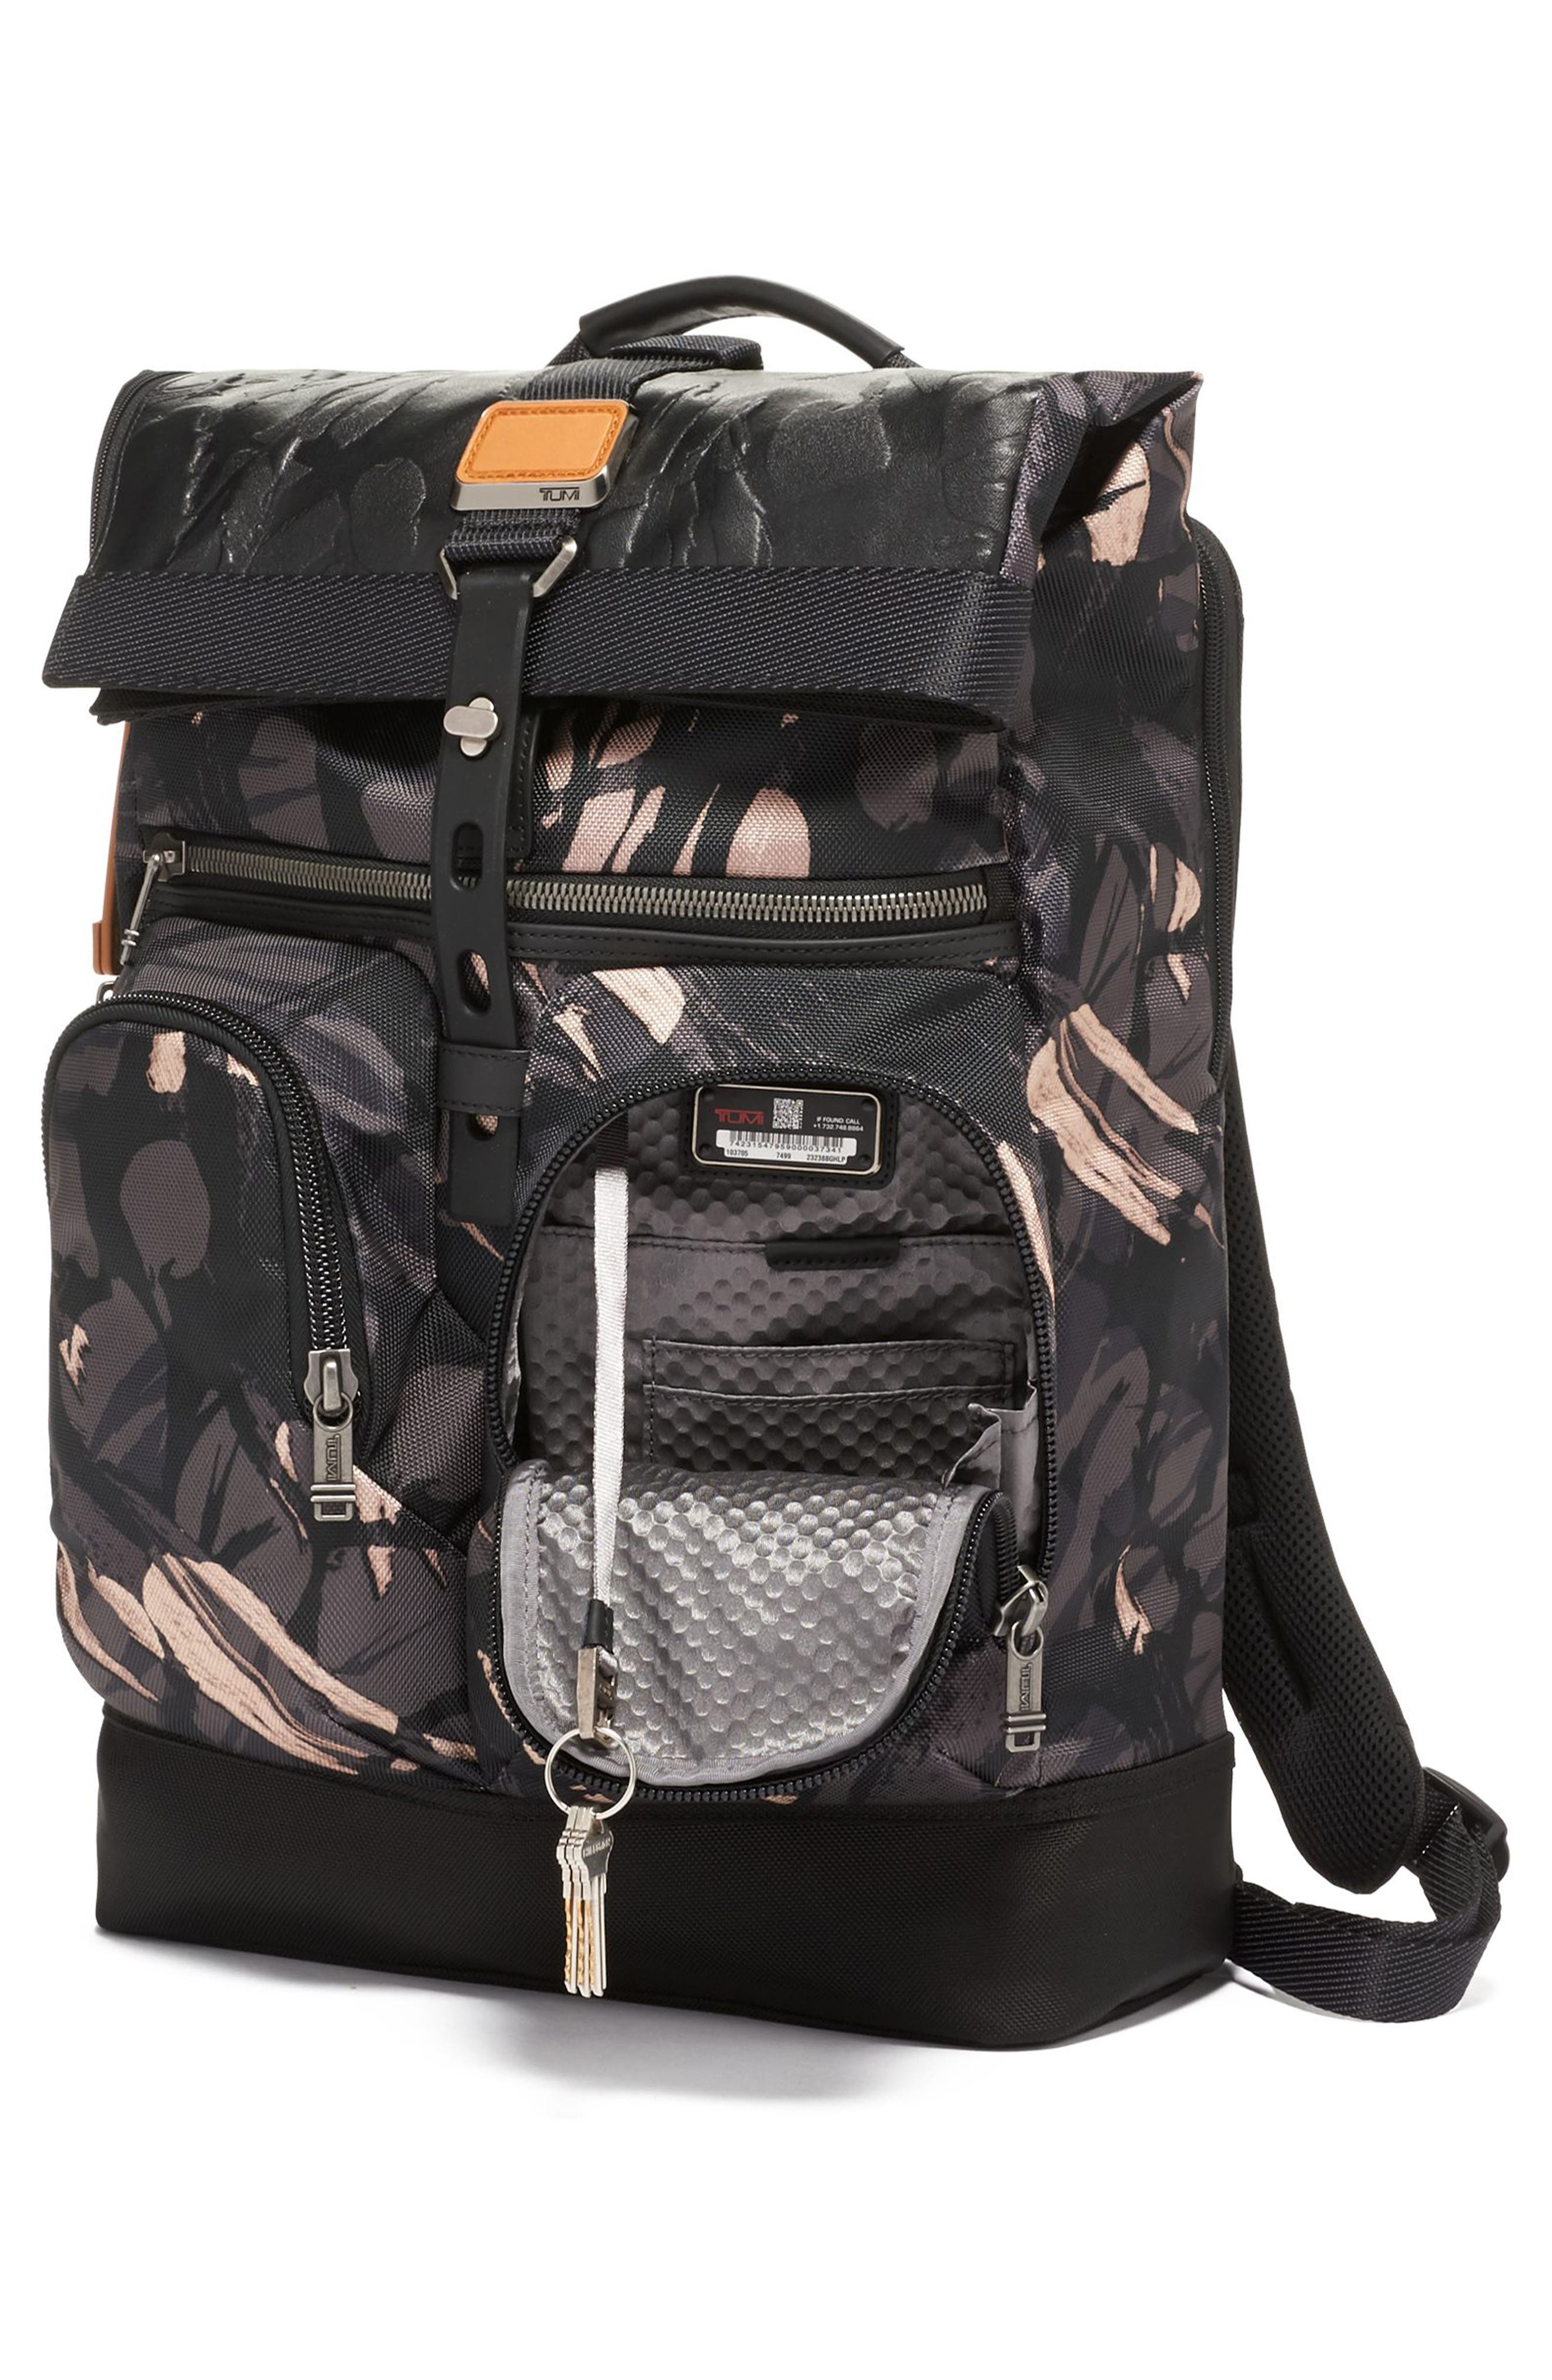 TUMI,                             Alpha Bravo London Backpack,                             Alternate thumbnail 3, color,                             GREY HIGHLANDS PRINT